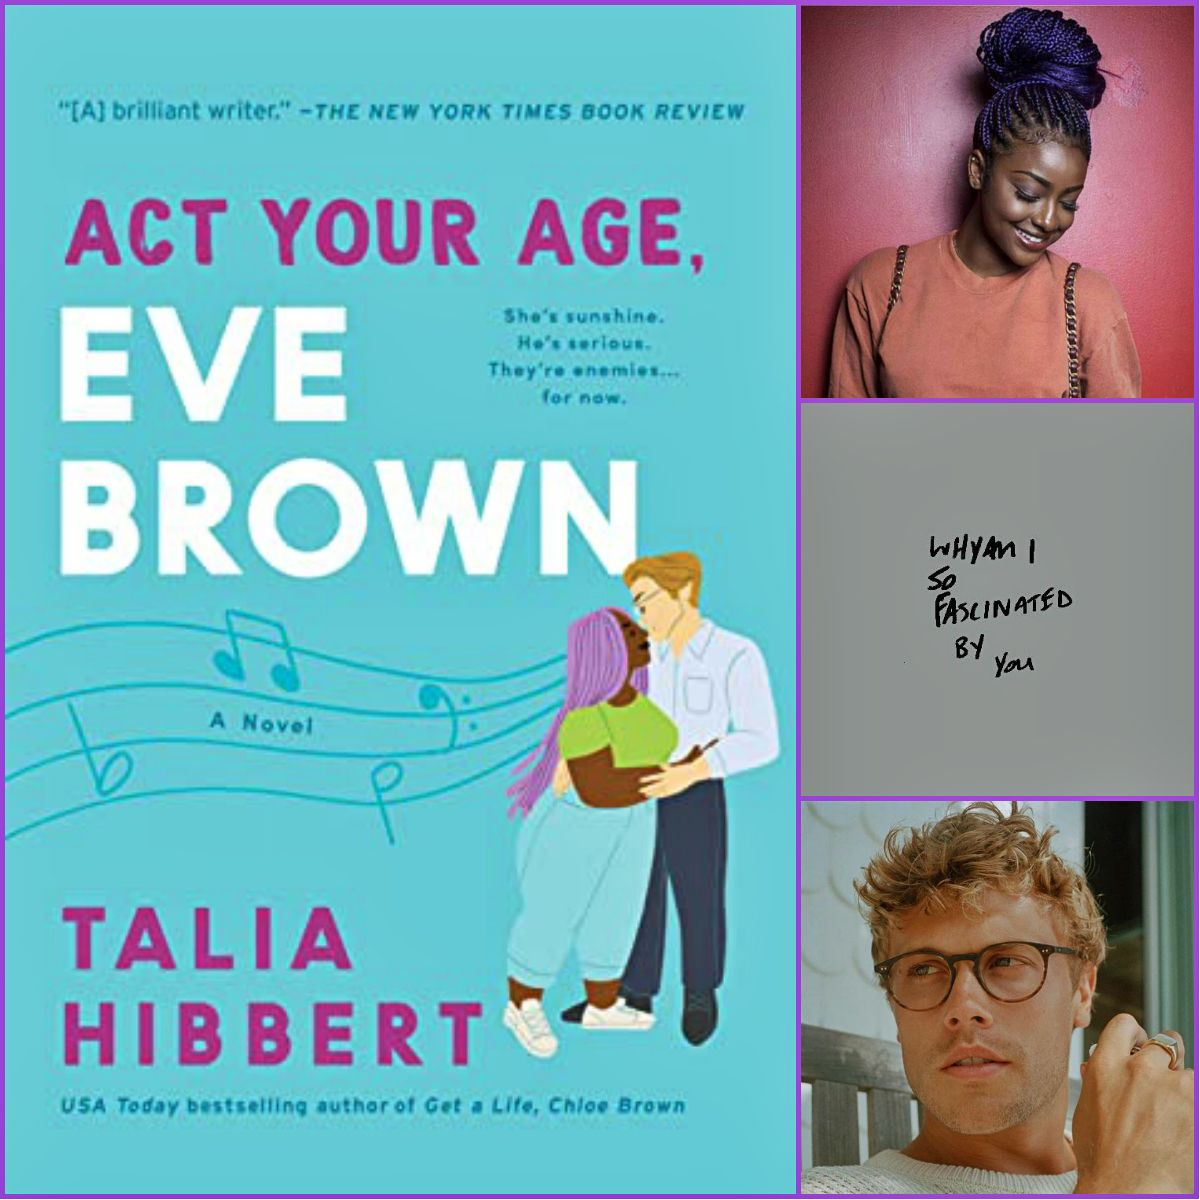 Act Your Age Eve Brown Talia Hibbert